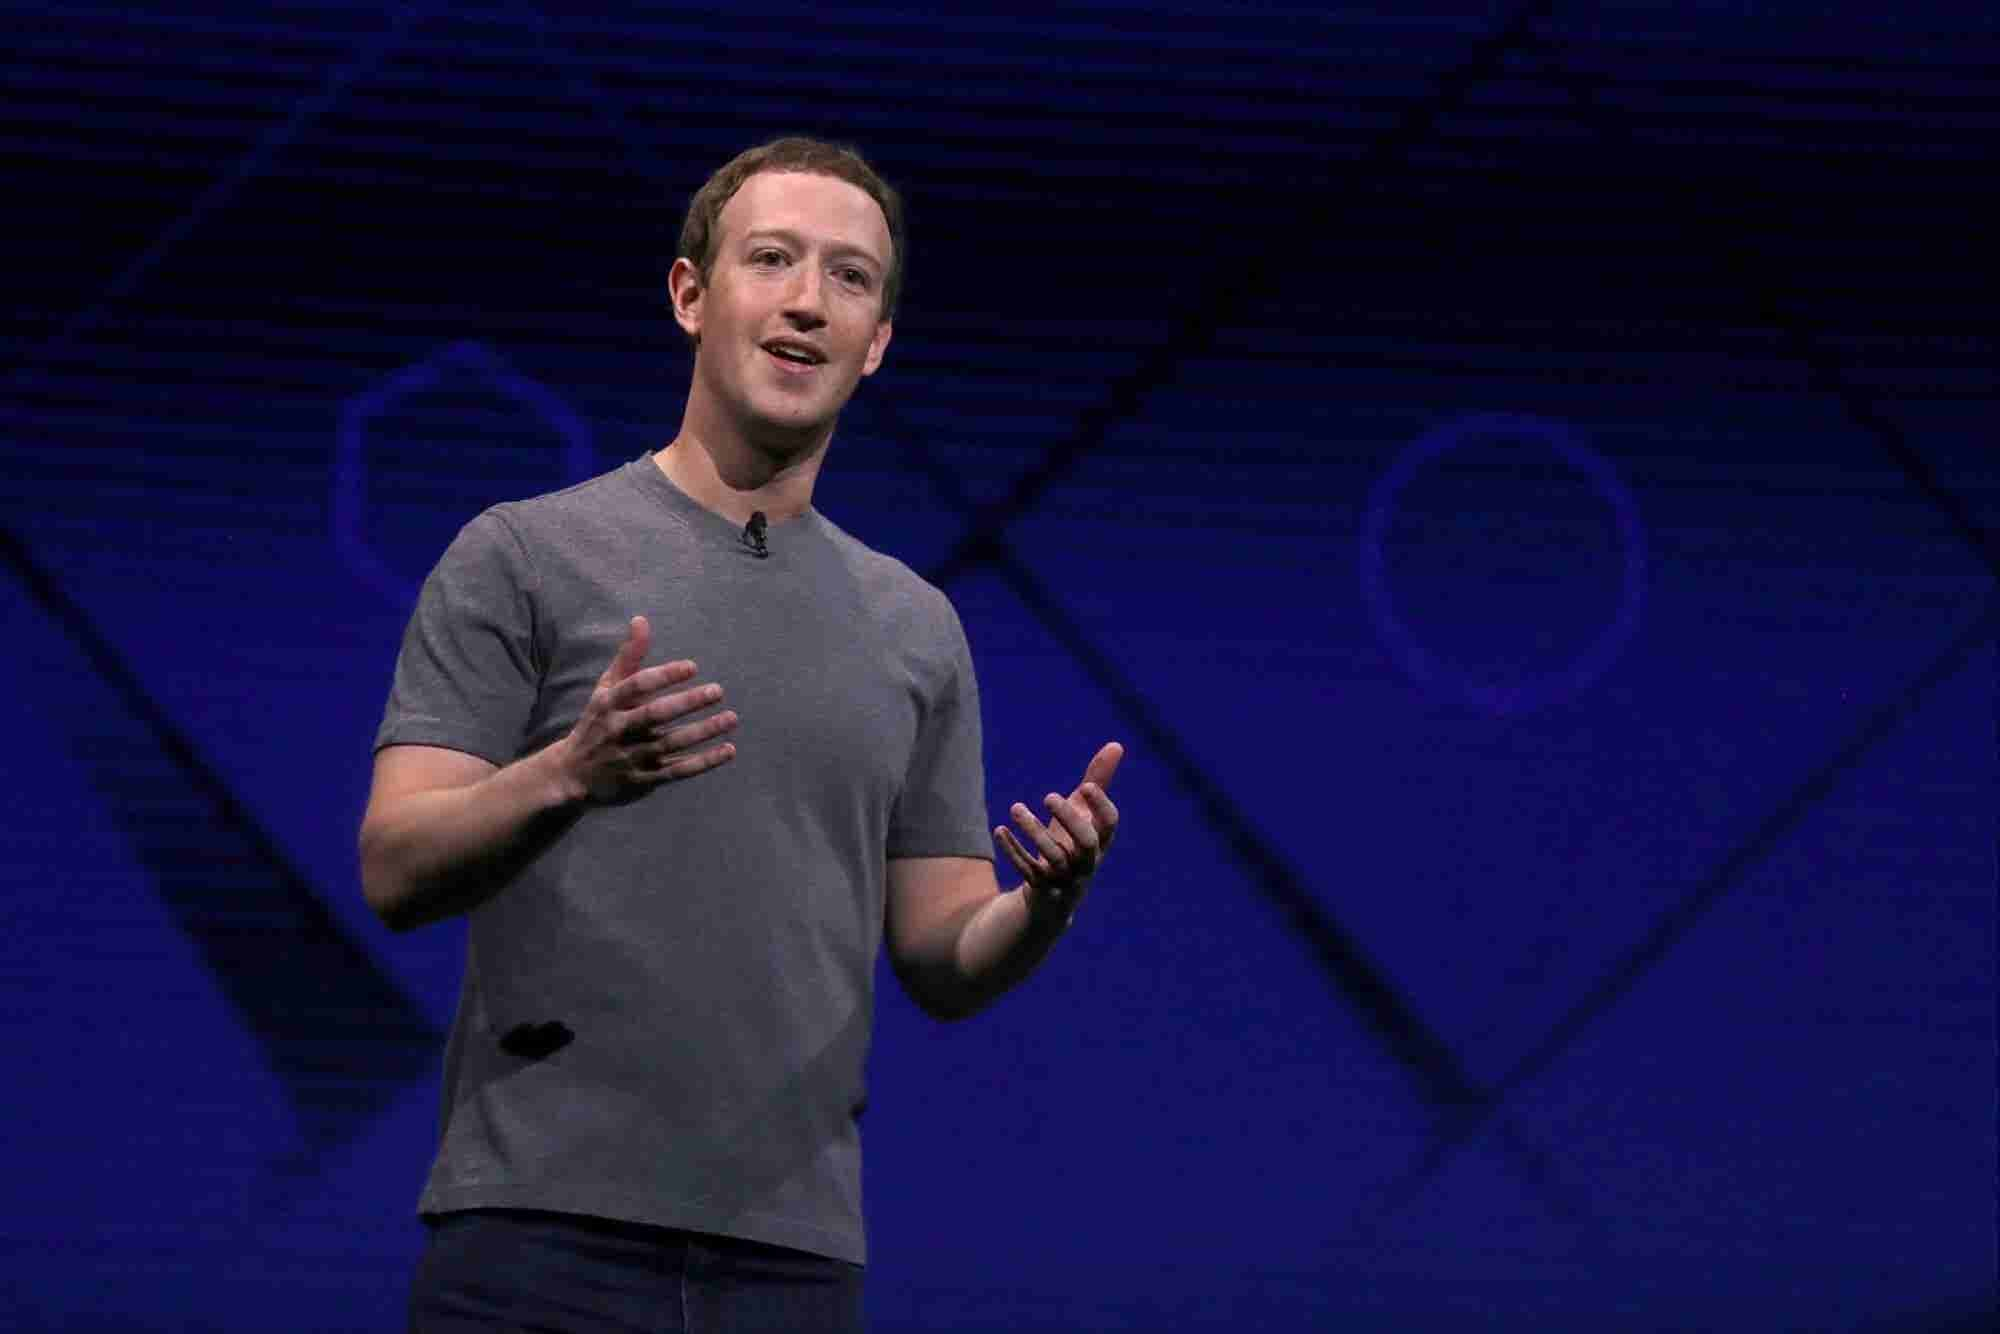 28 Quotes on Success From Mark Zuckerberg, Sheryl Sandberg and More